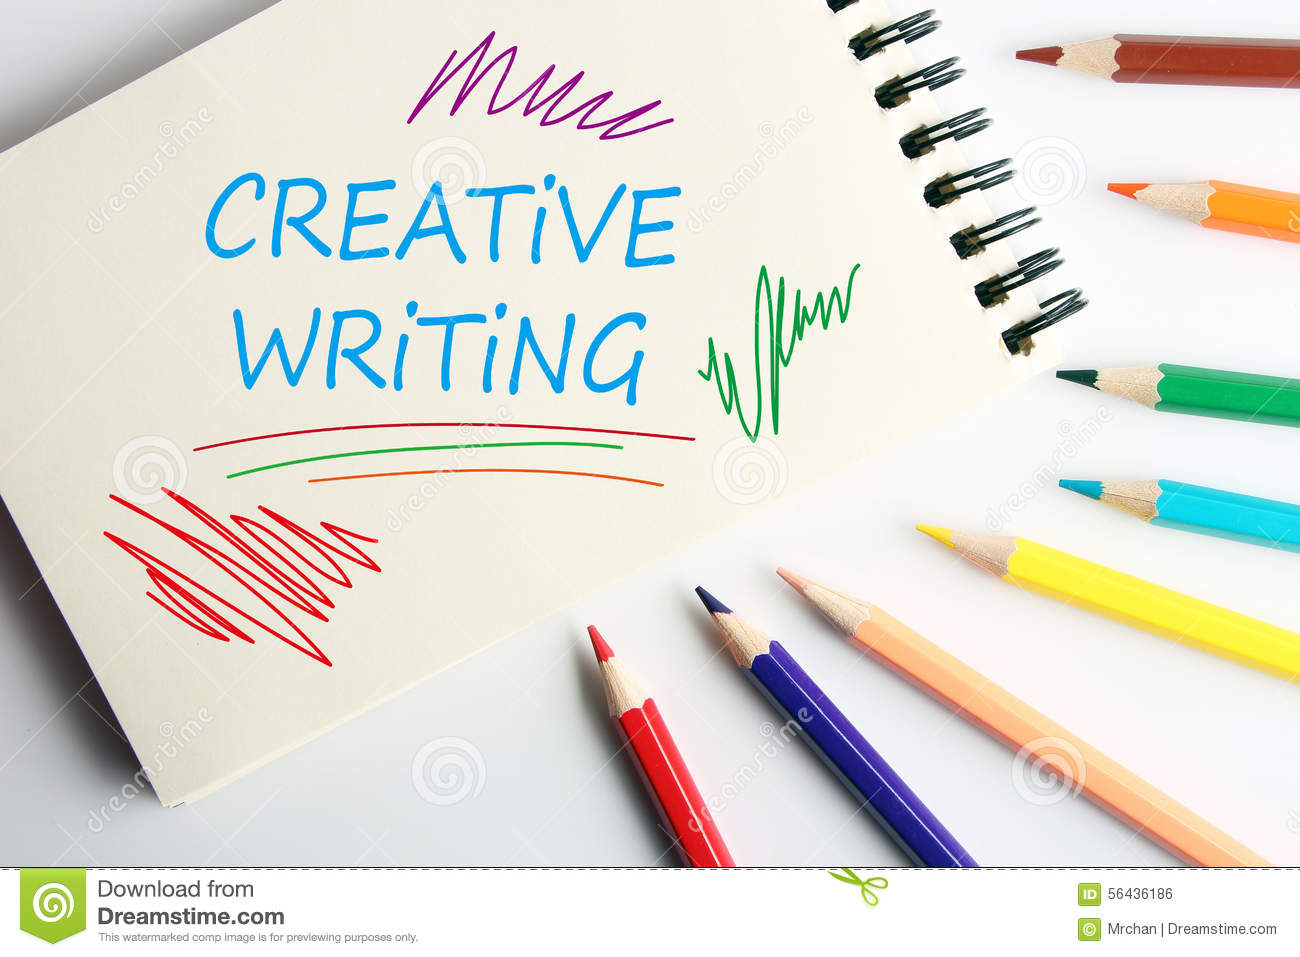 Creative writing for dummies download